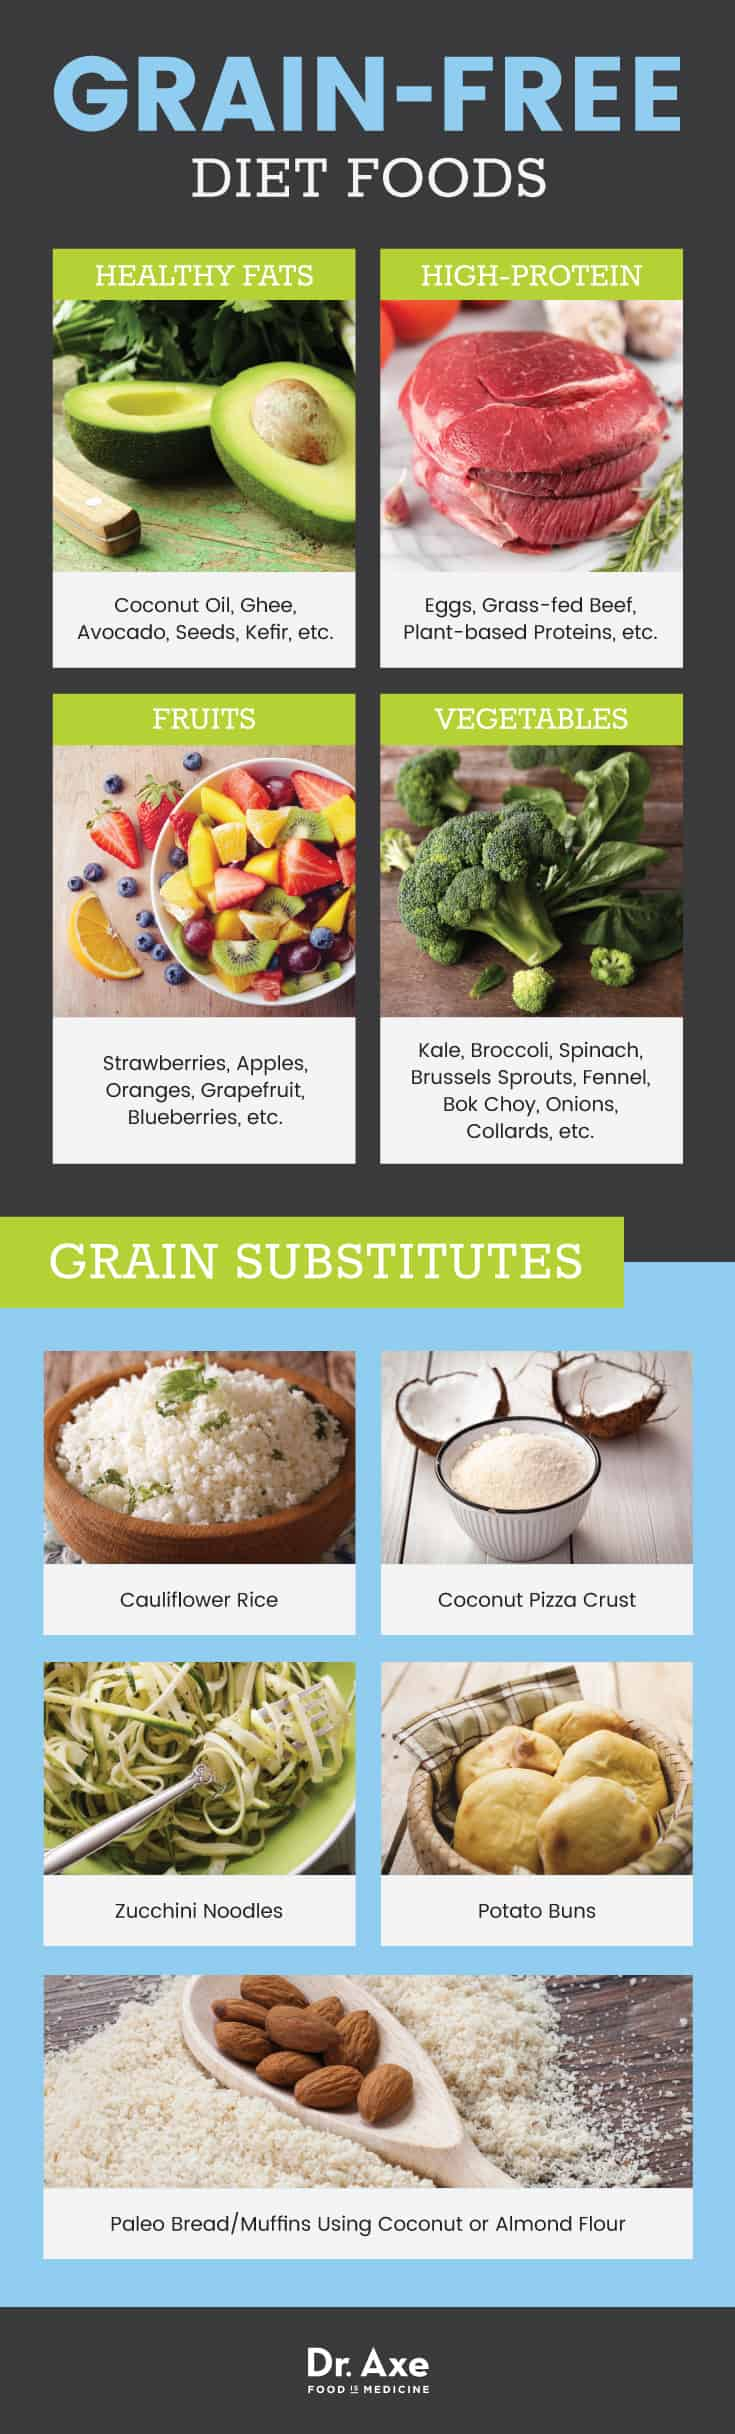 Grain-free diet foods - Dr. Axe